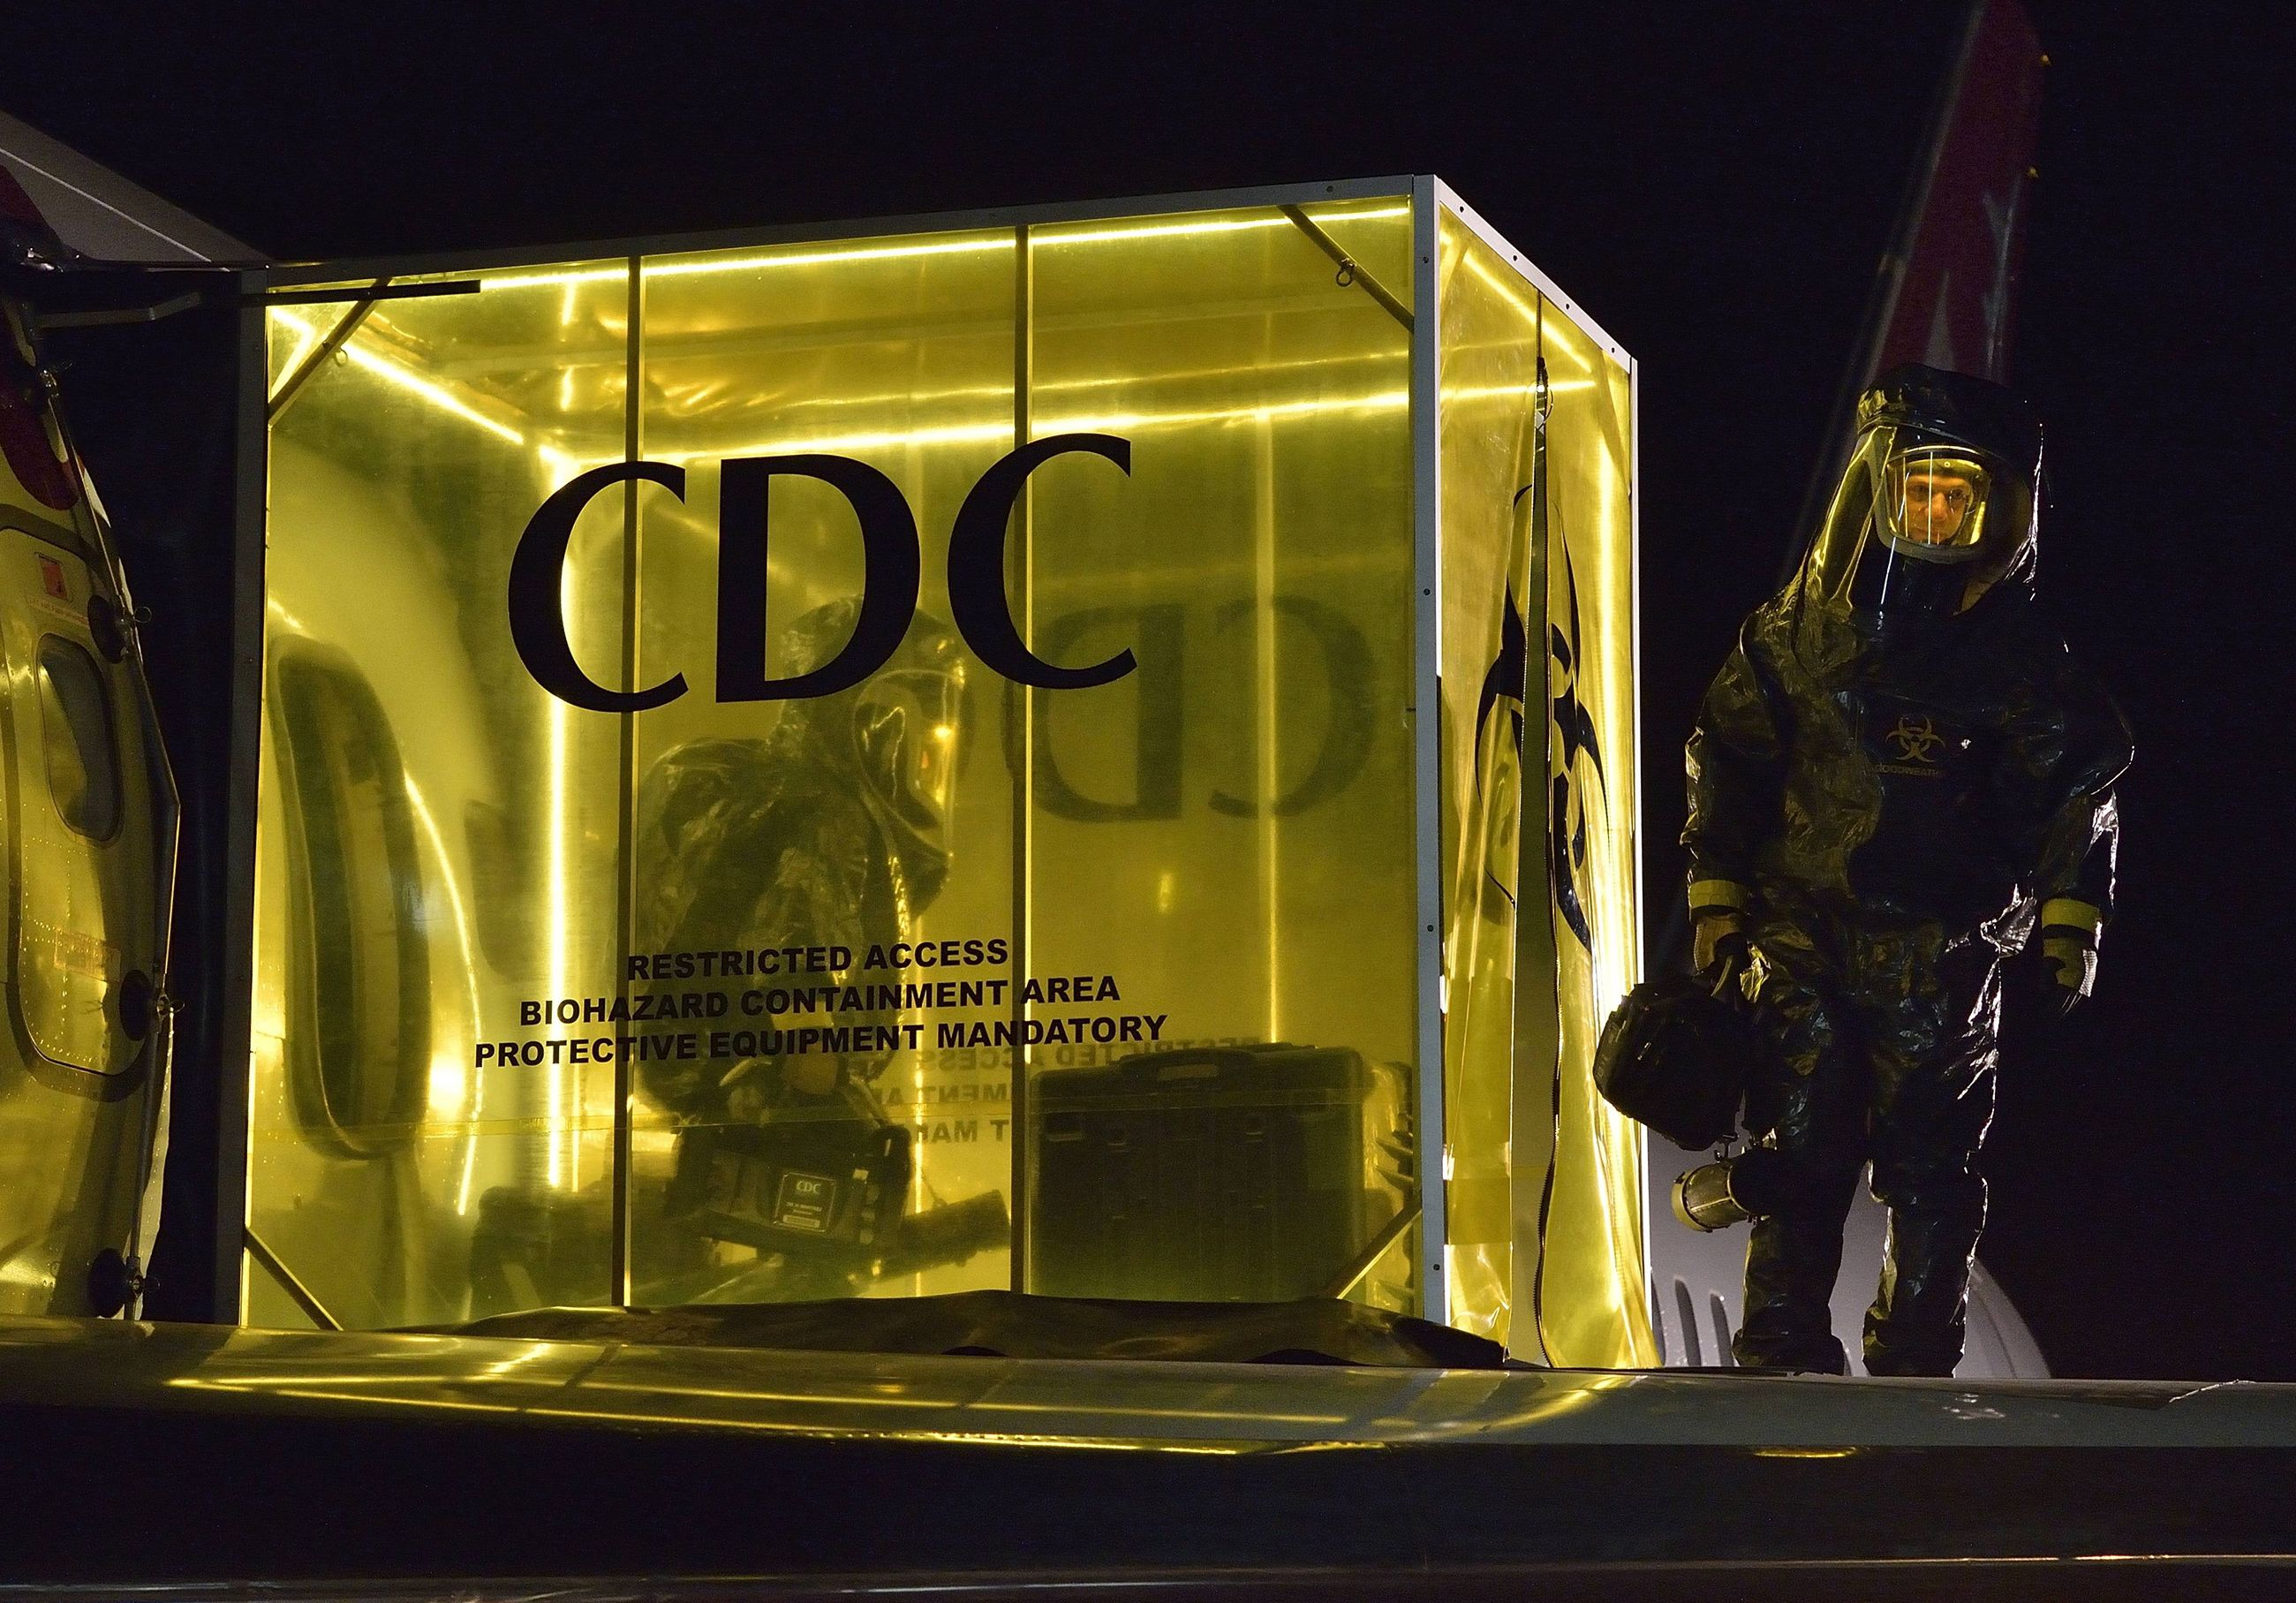 The CDC in The Strain